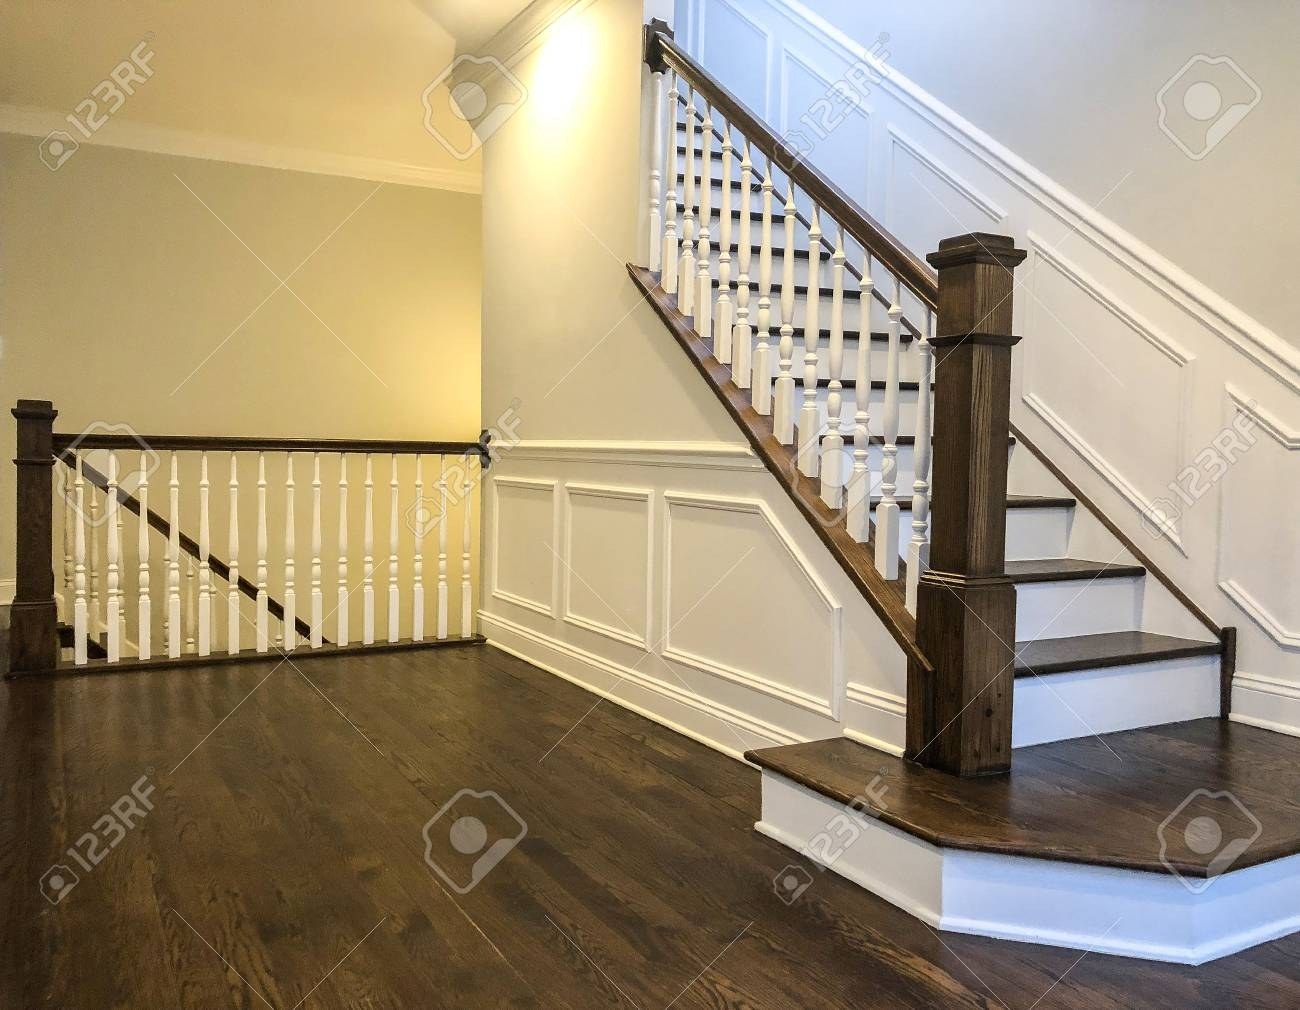 Stairs Of The Luxury House With White Walls Wood Panels In White   Dark Wood And White Stairs   Light   Contrast   Brick Wall Dark Stain   Flooring   Carpet